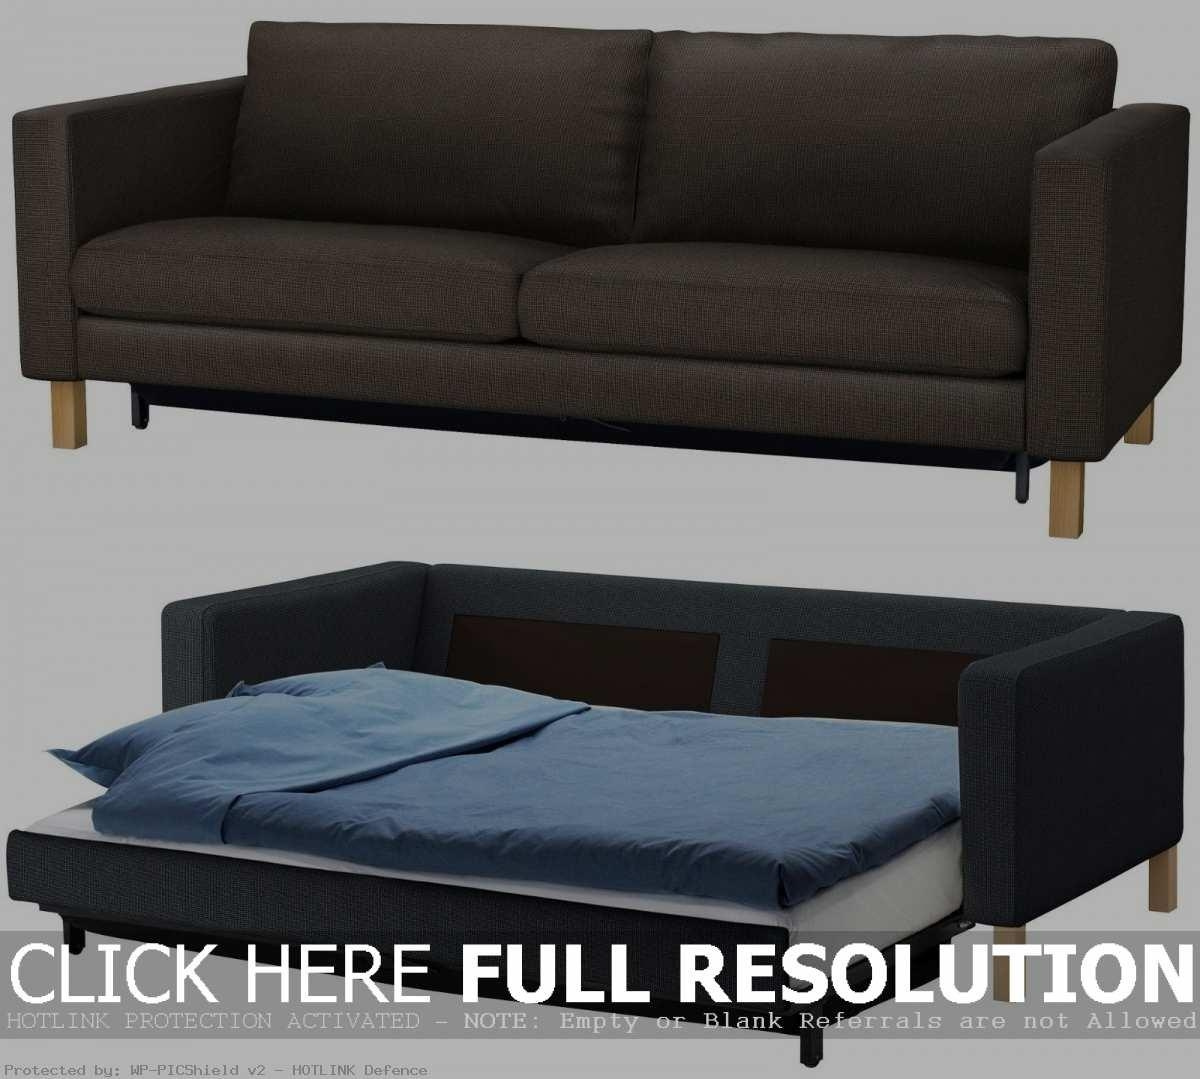 Small Sleeper Sofa Ikea Intended For Sleeper Sofa Sectional Ikea (View 7 of 20)